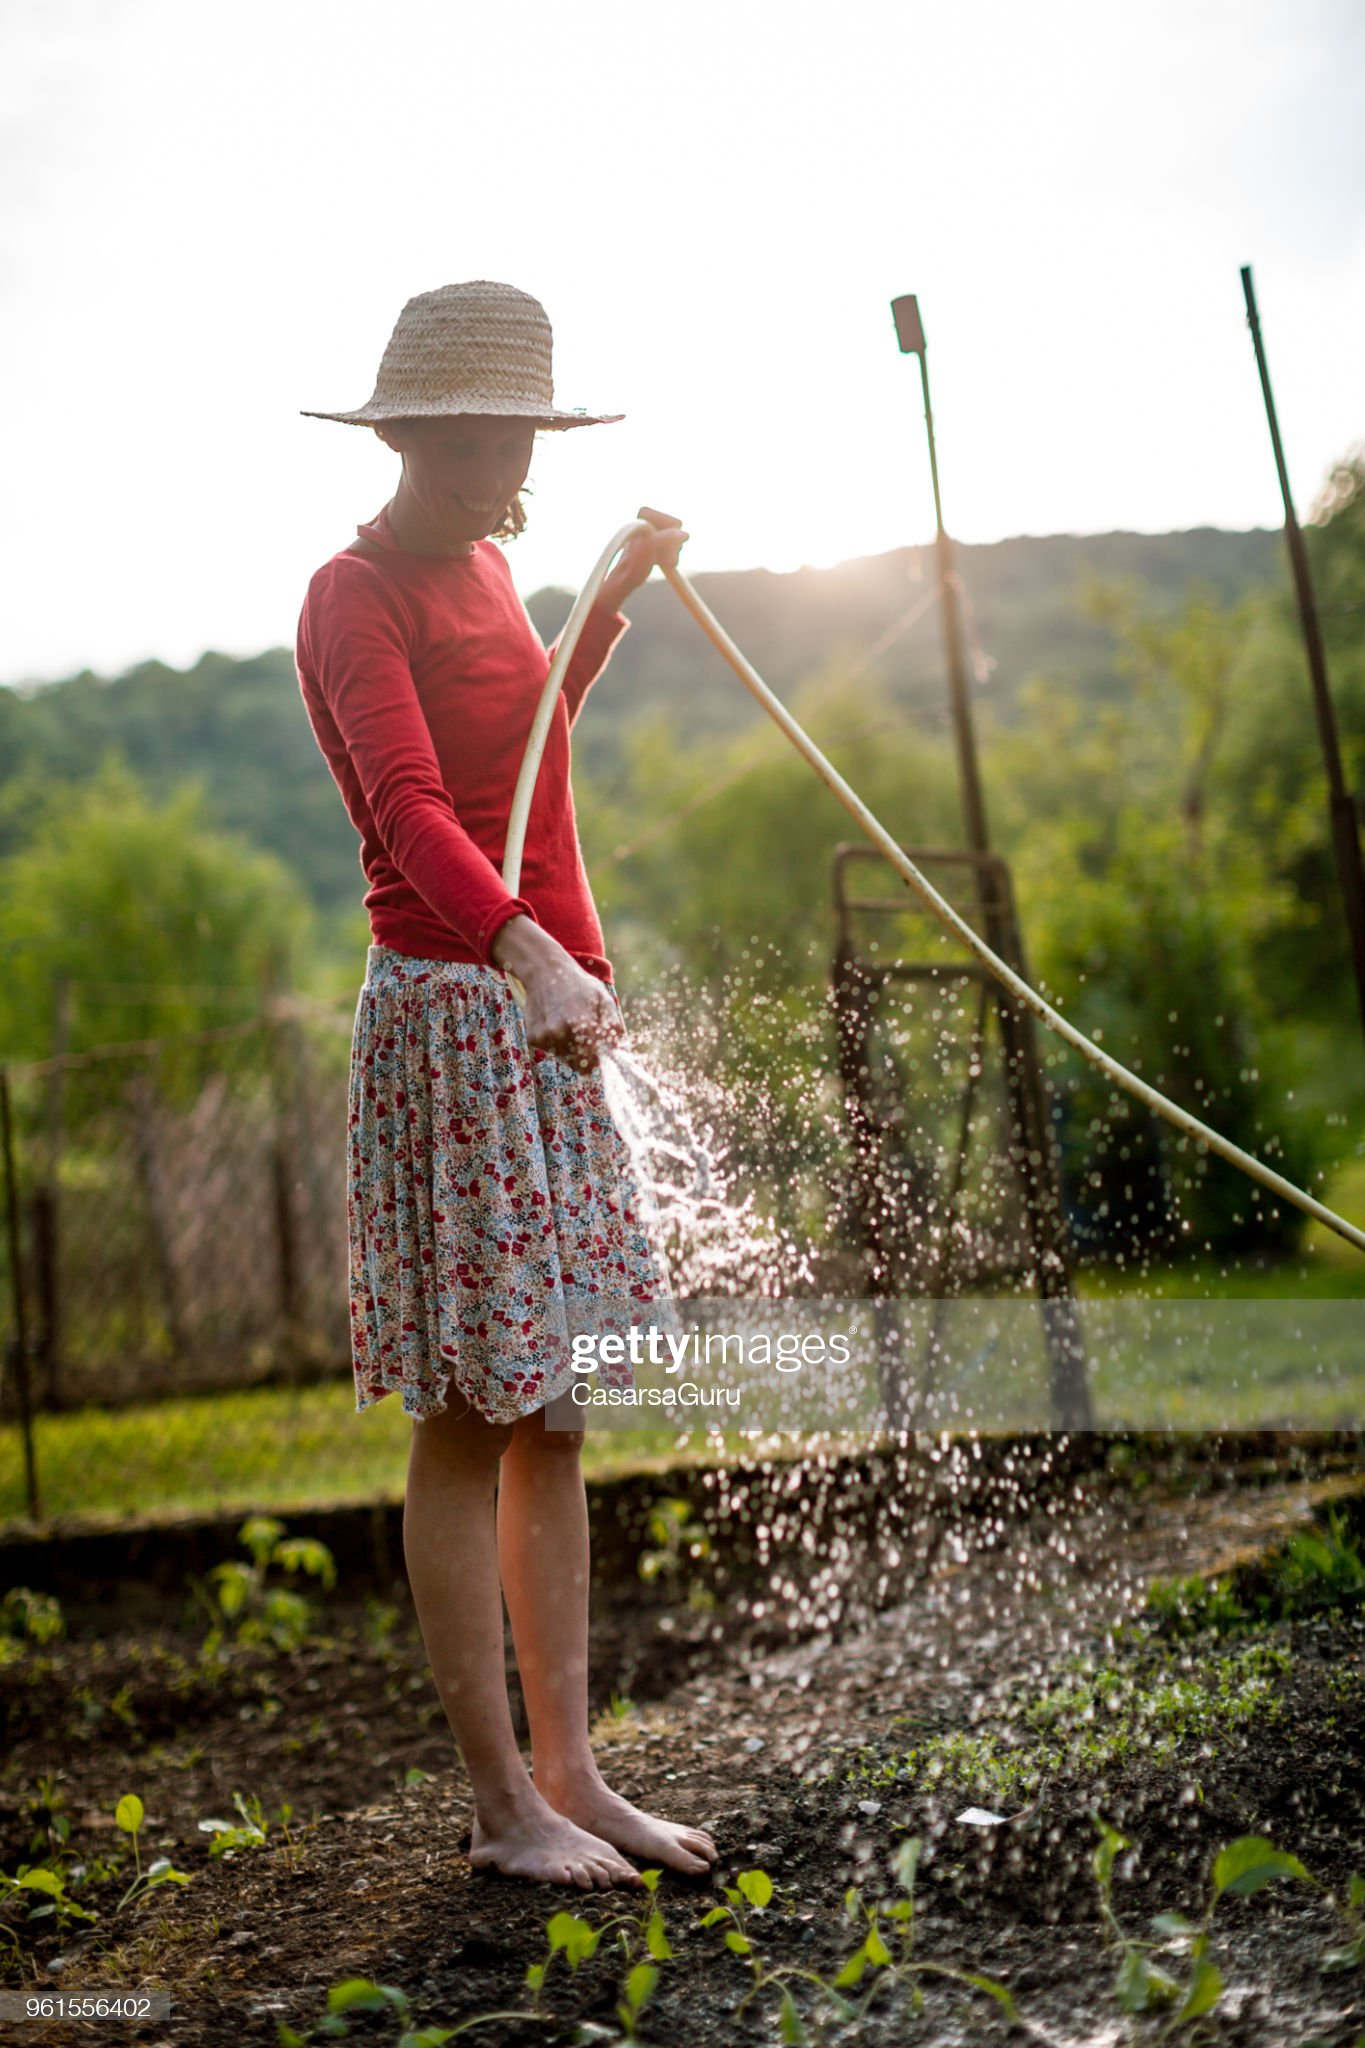 https://media.gettyimages.com/photos/joyful-woman-watering-vegetable-garden-at-the-sunset-picture-id961556402?s=2048x2048